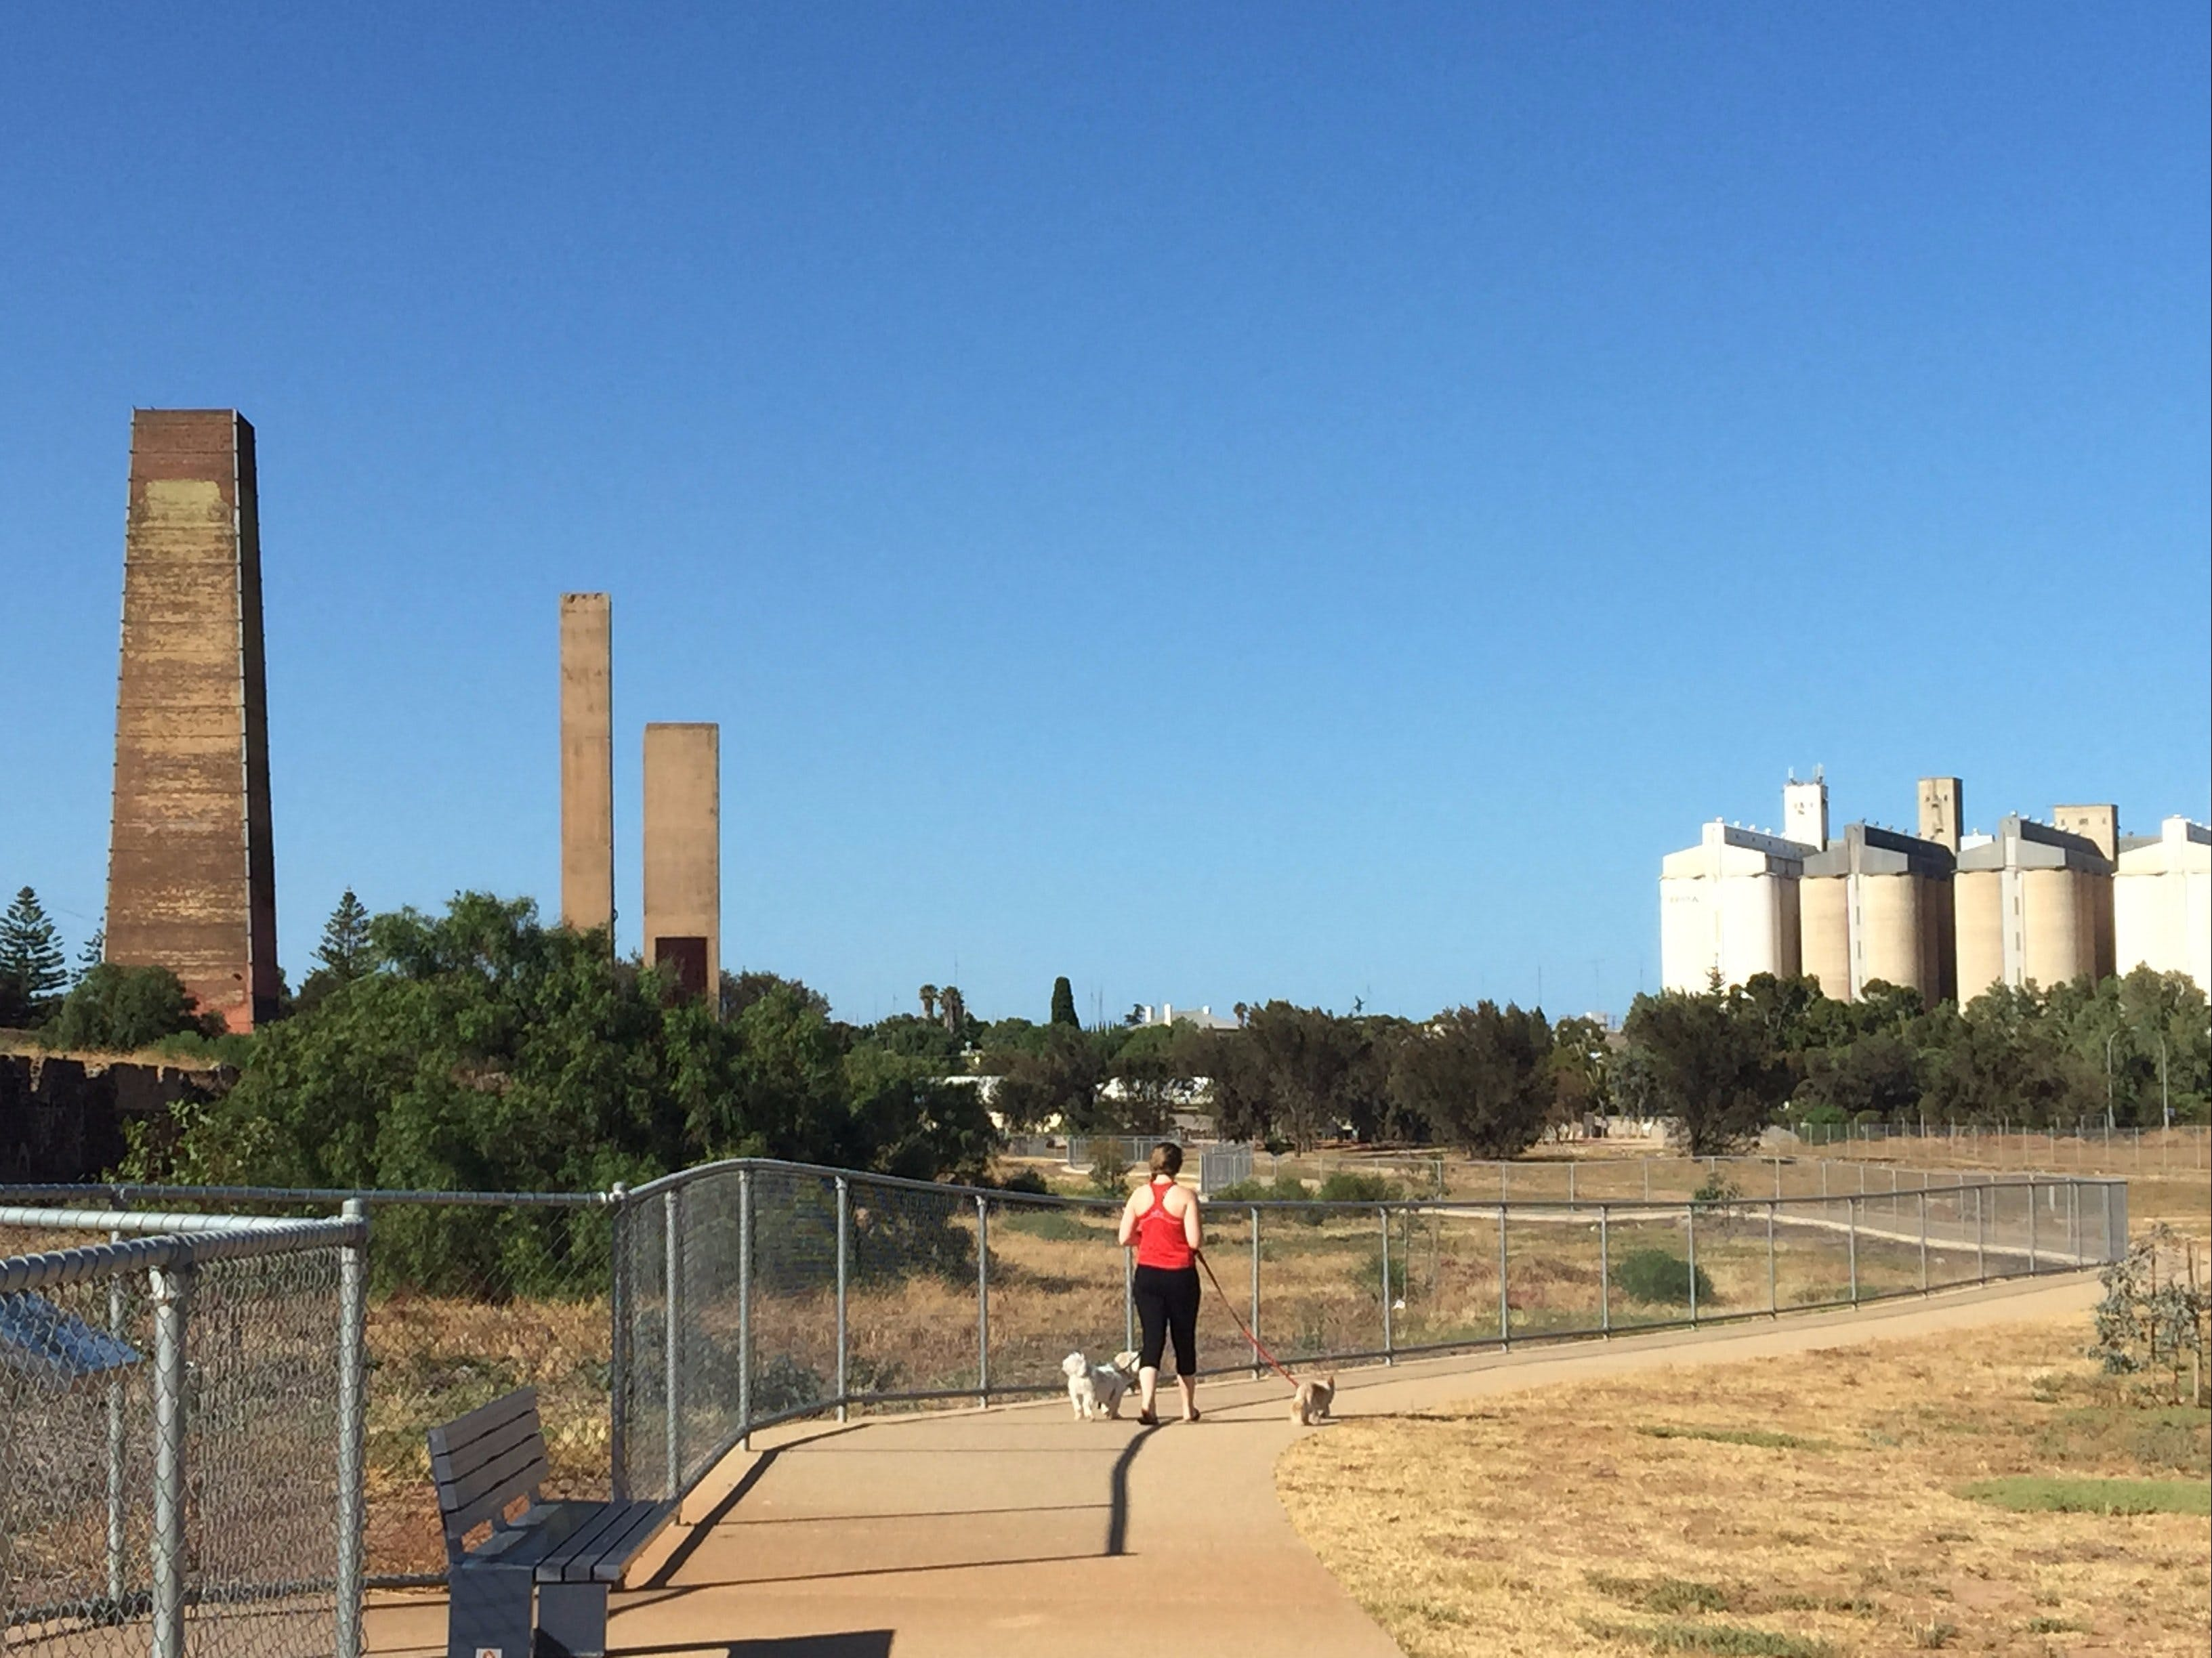 Smelters Trail Wallaroo - Find Attractions